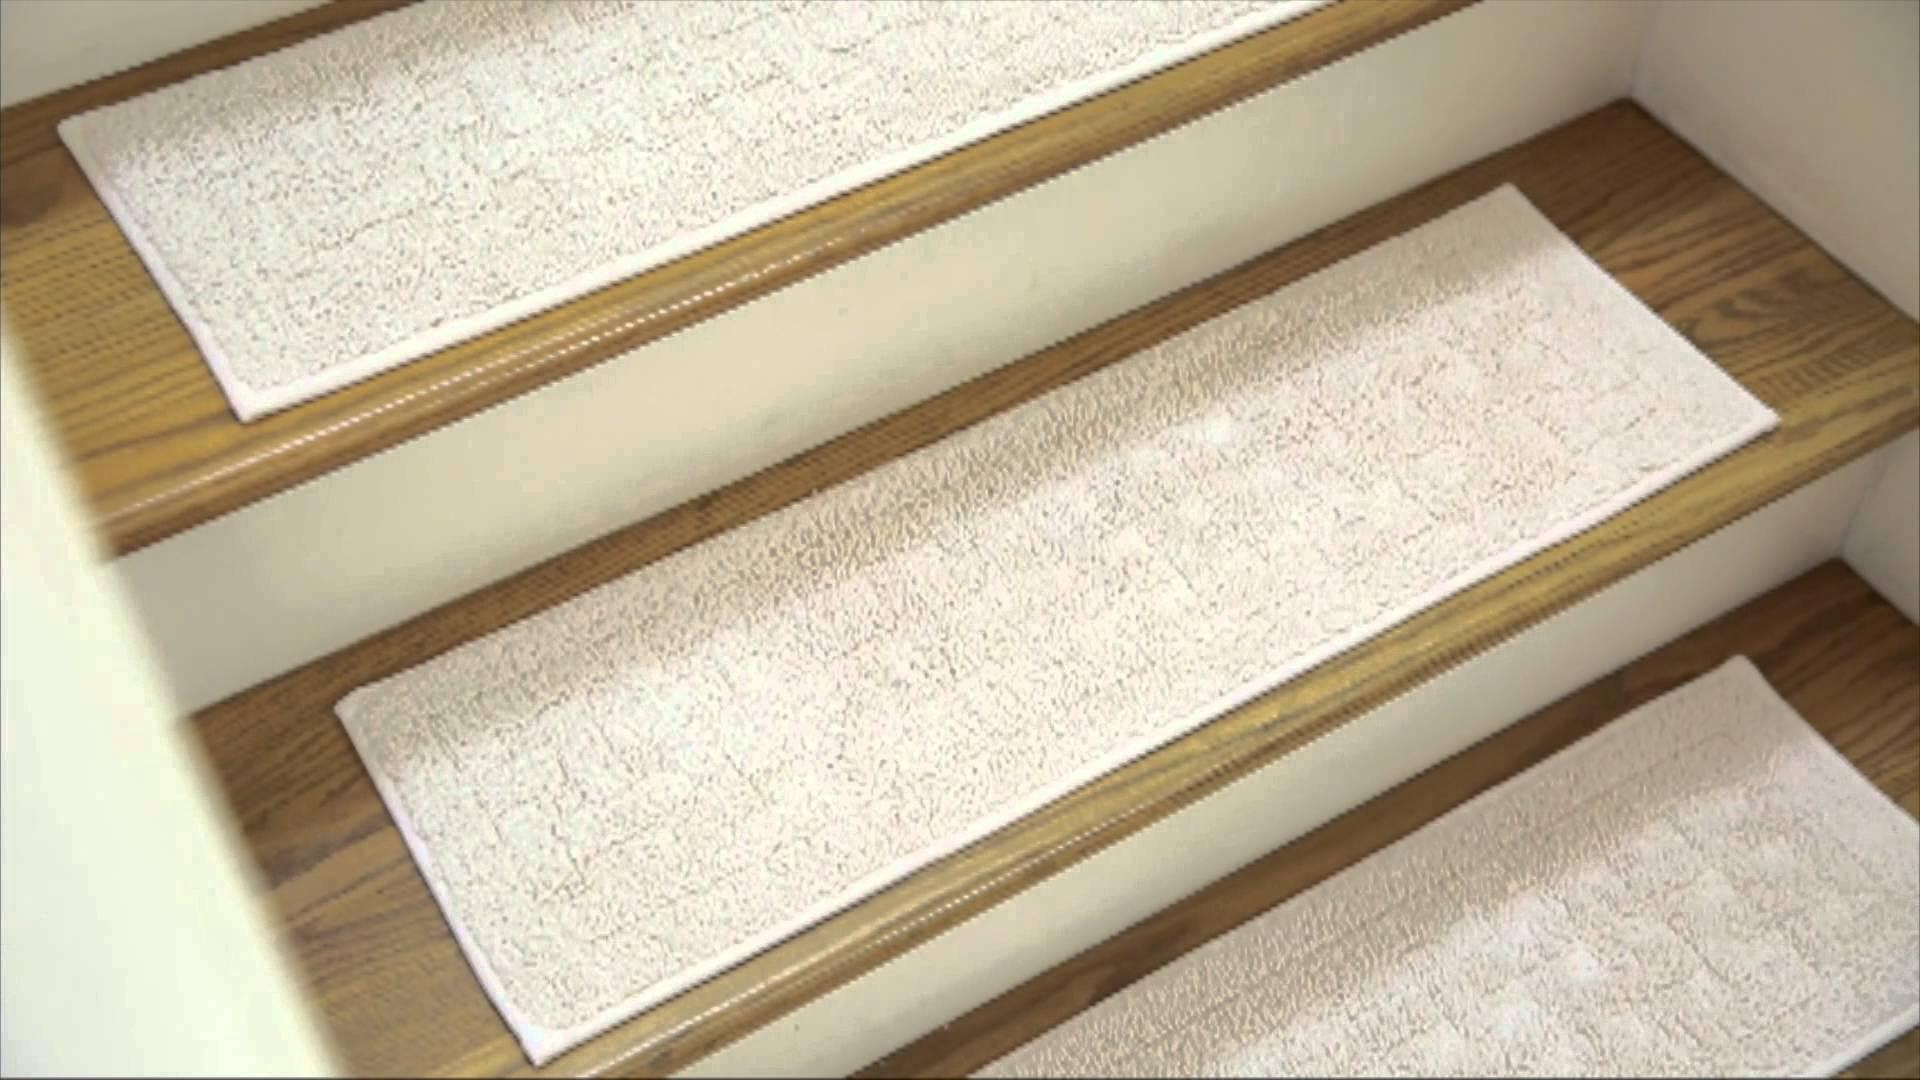 40 Carpet Treads For Stairs Uk Ucc Woven Stair Carpet Lifestyle Within Stair Treads On Carpet (#2 of 20)